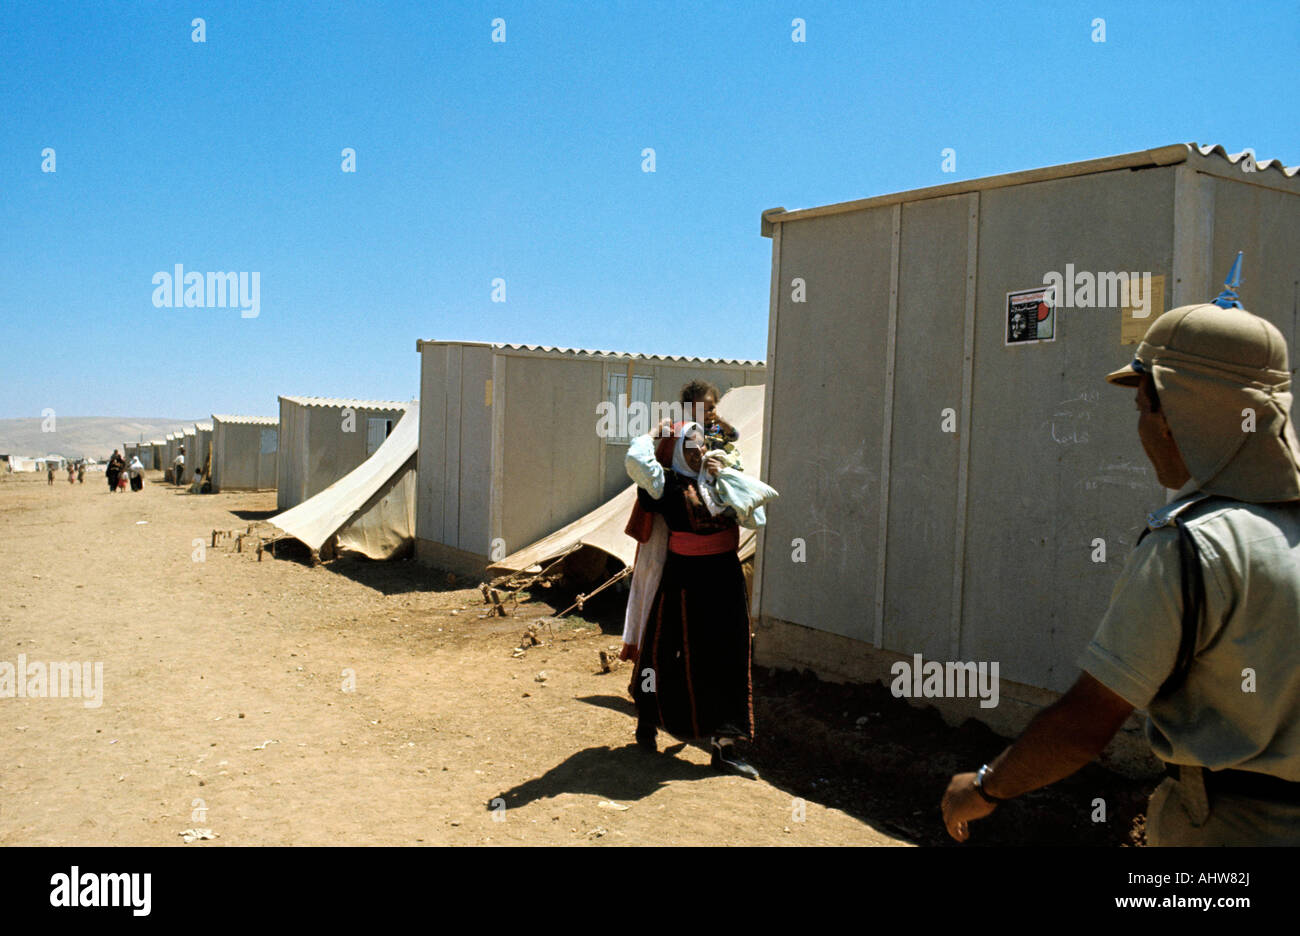 Palestinian refugee camp in Jordan Photo by Terry Fincher - Stock Image